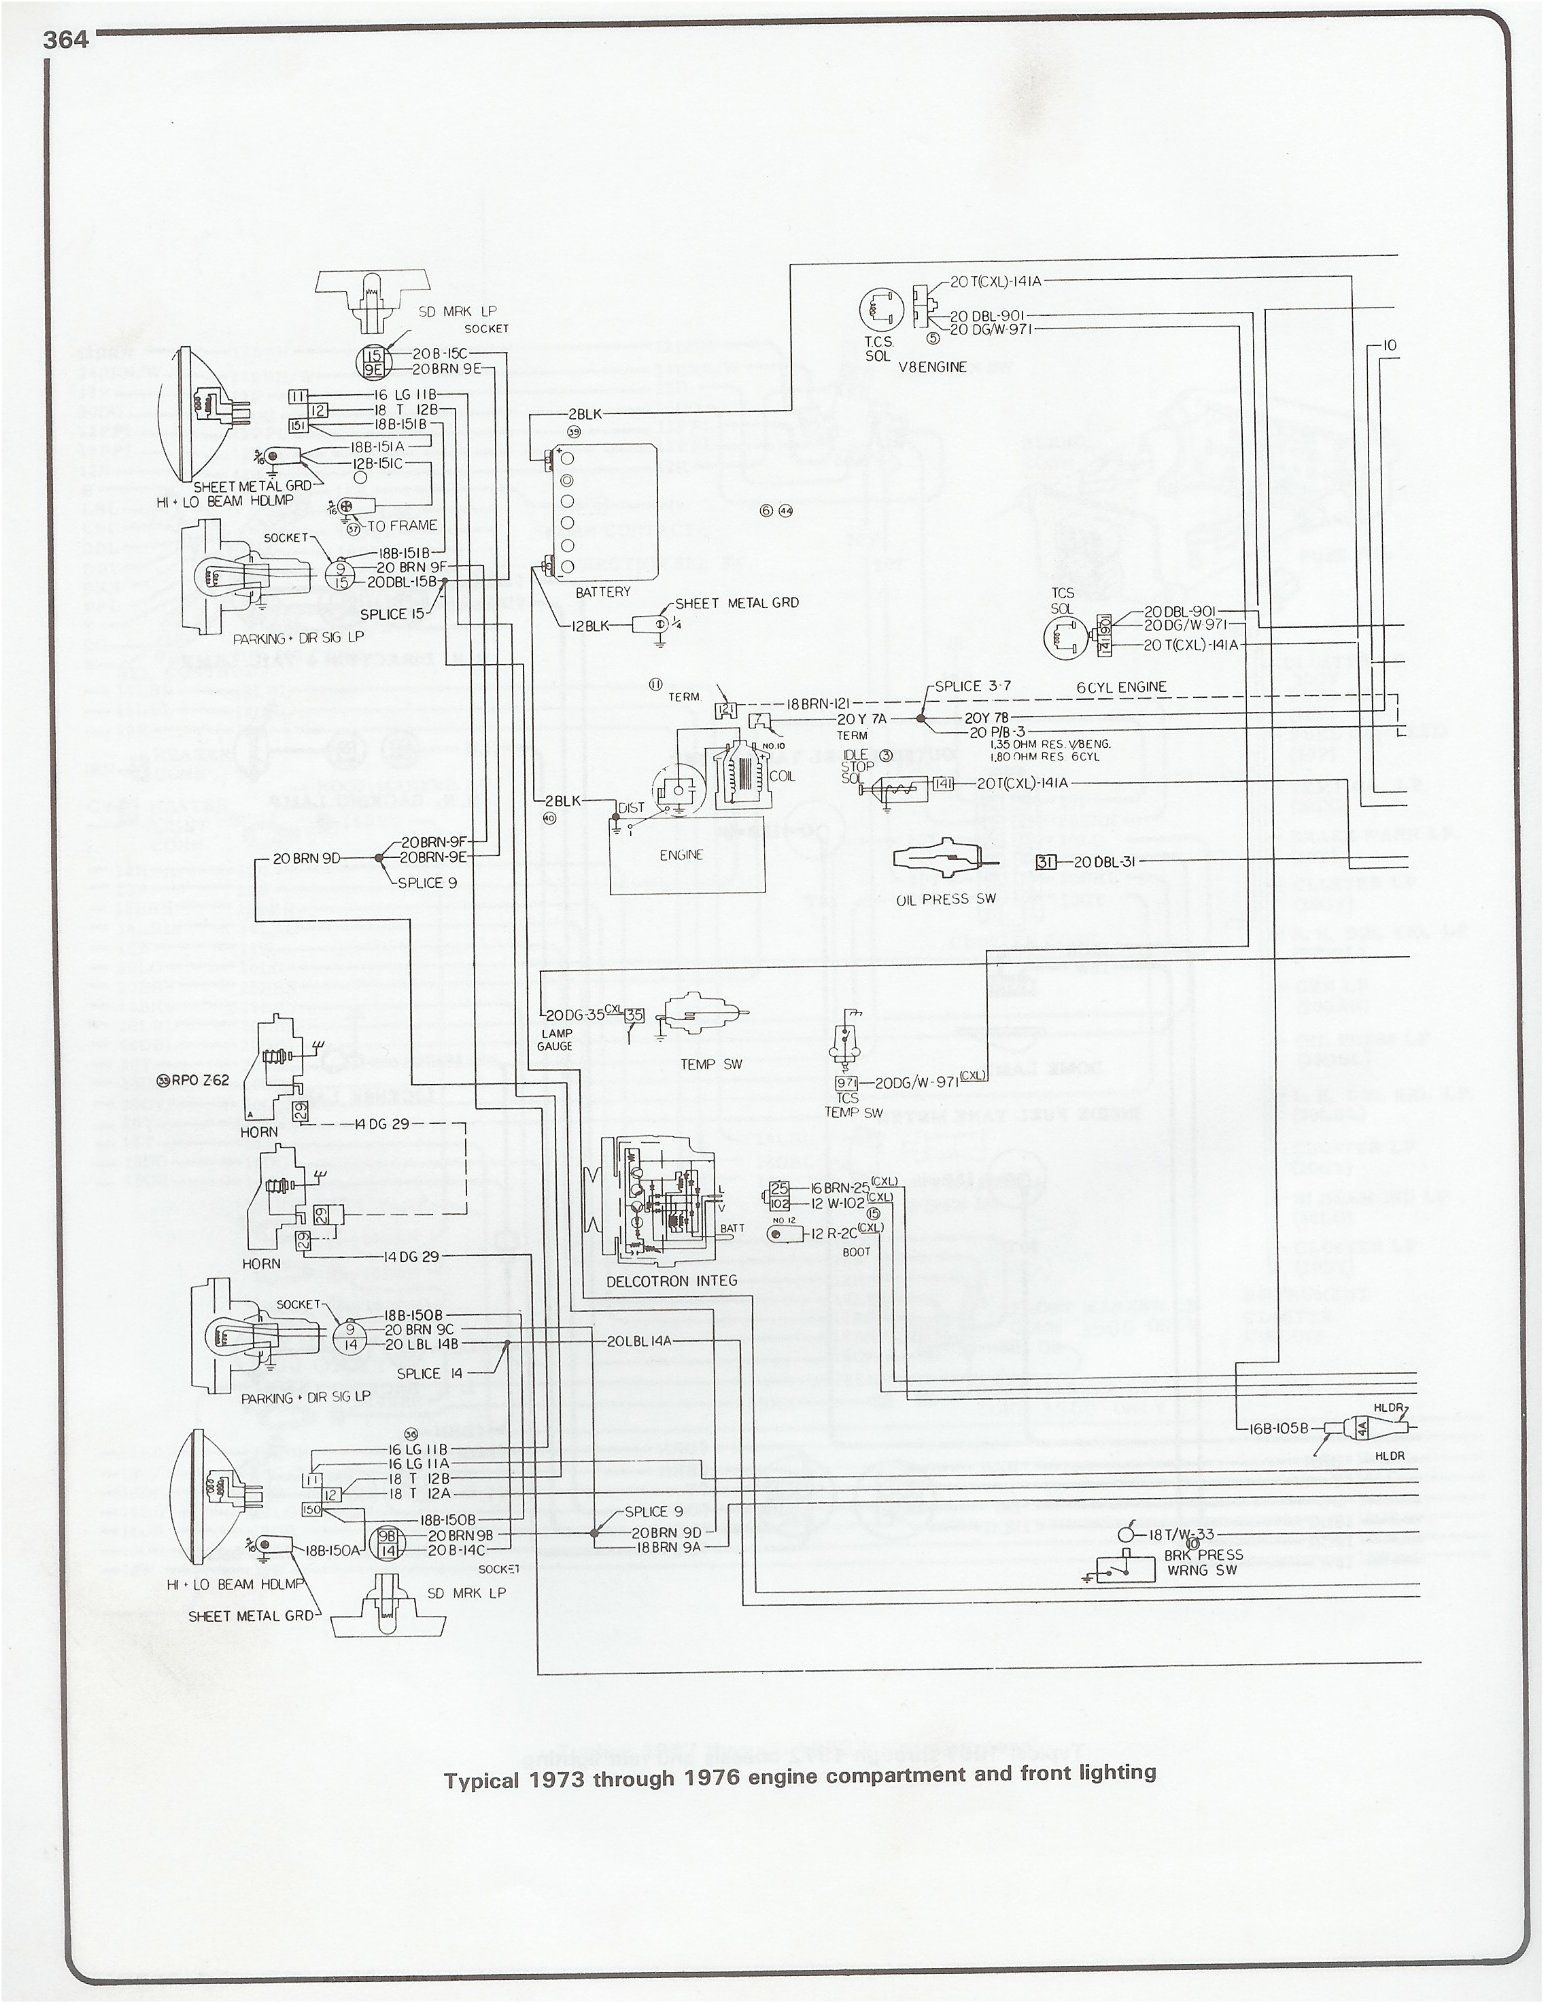 hight resolution of wiring diagram 1973 1976 chevy pickup chevy wiring diagram 1976 chevy truck